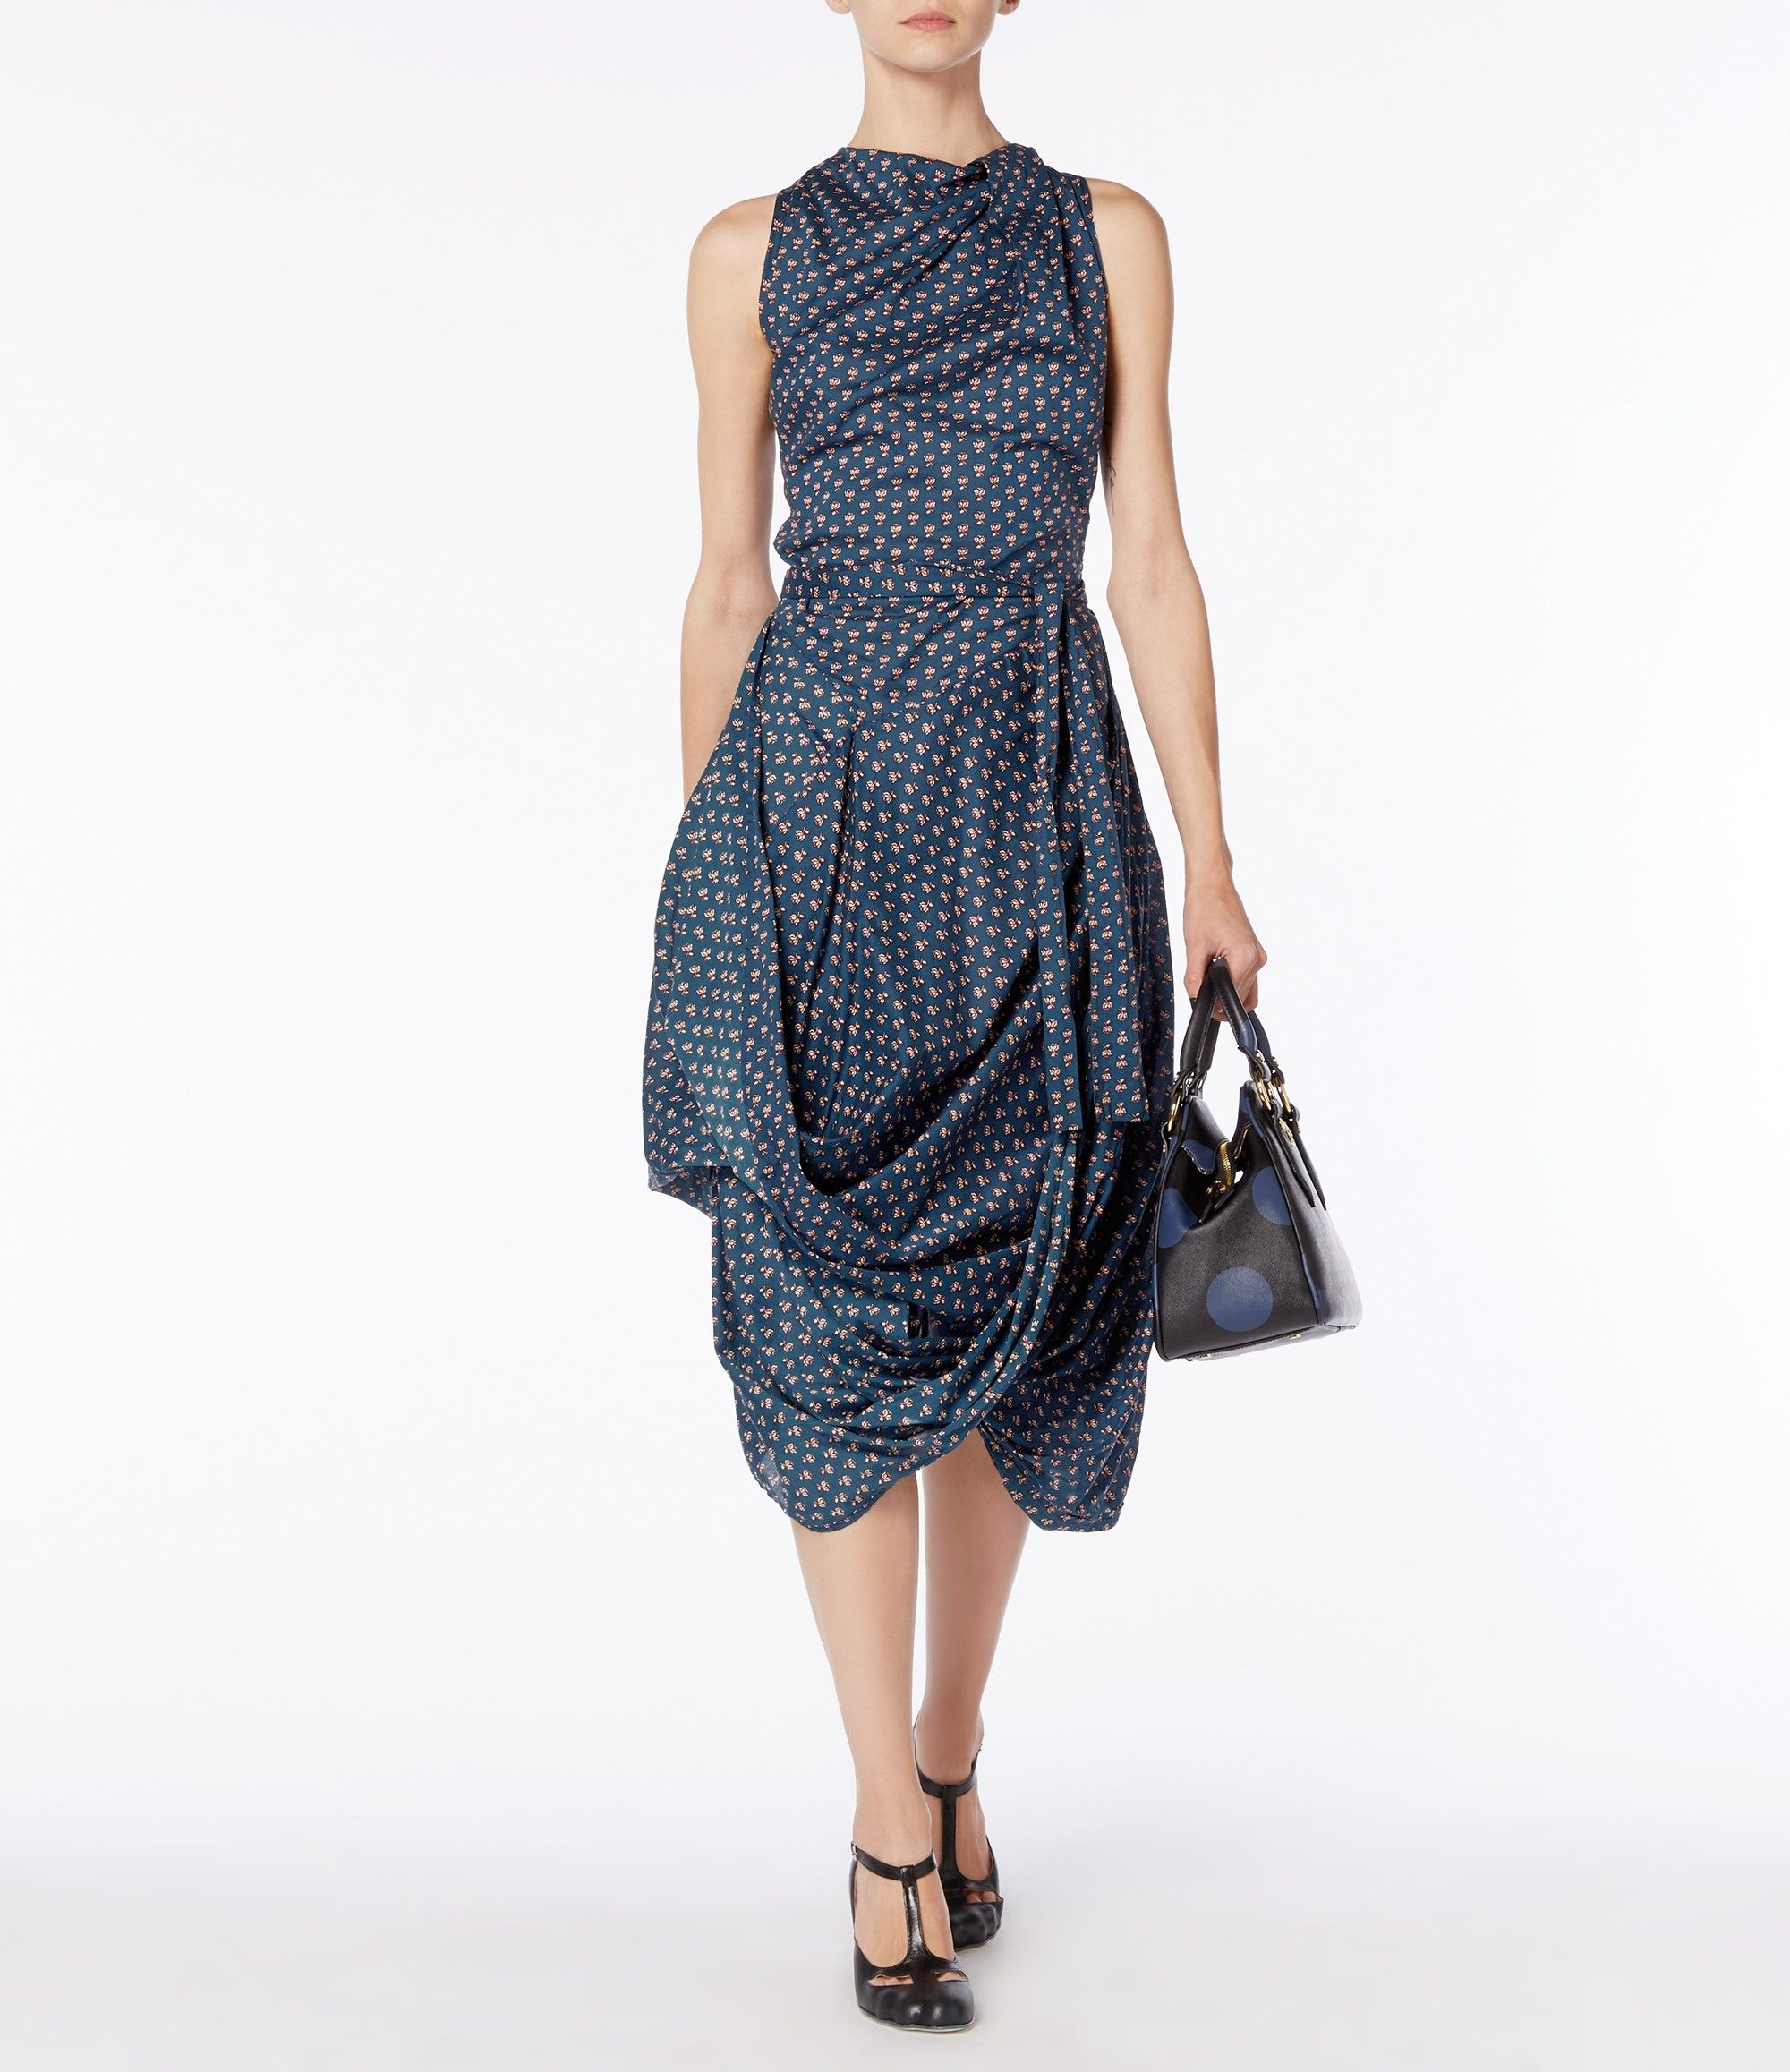 Dress for Women, Evening Cocktail Party On Sale, Anglomania, Grey, Viscose, 2017, 8 Vivienne Westwood